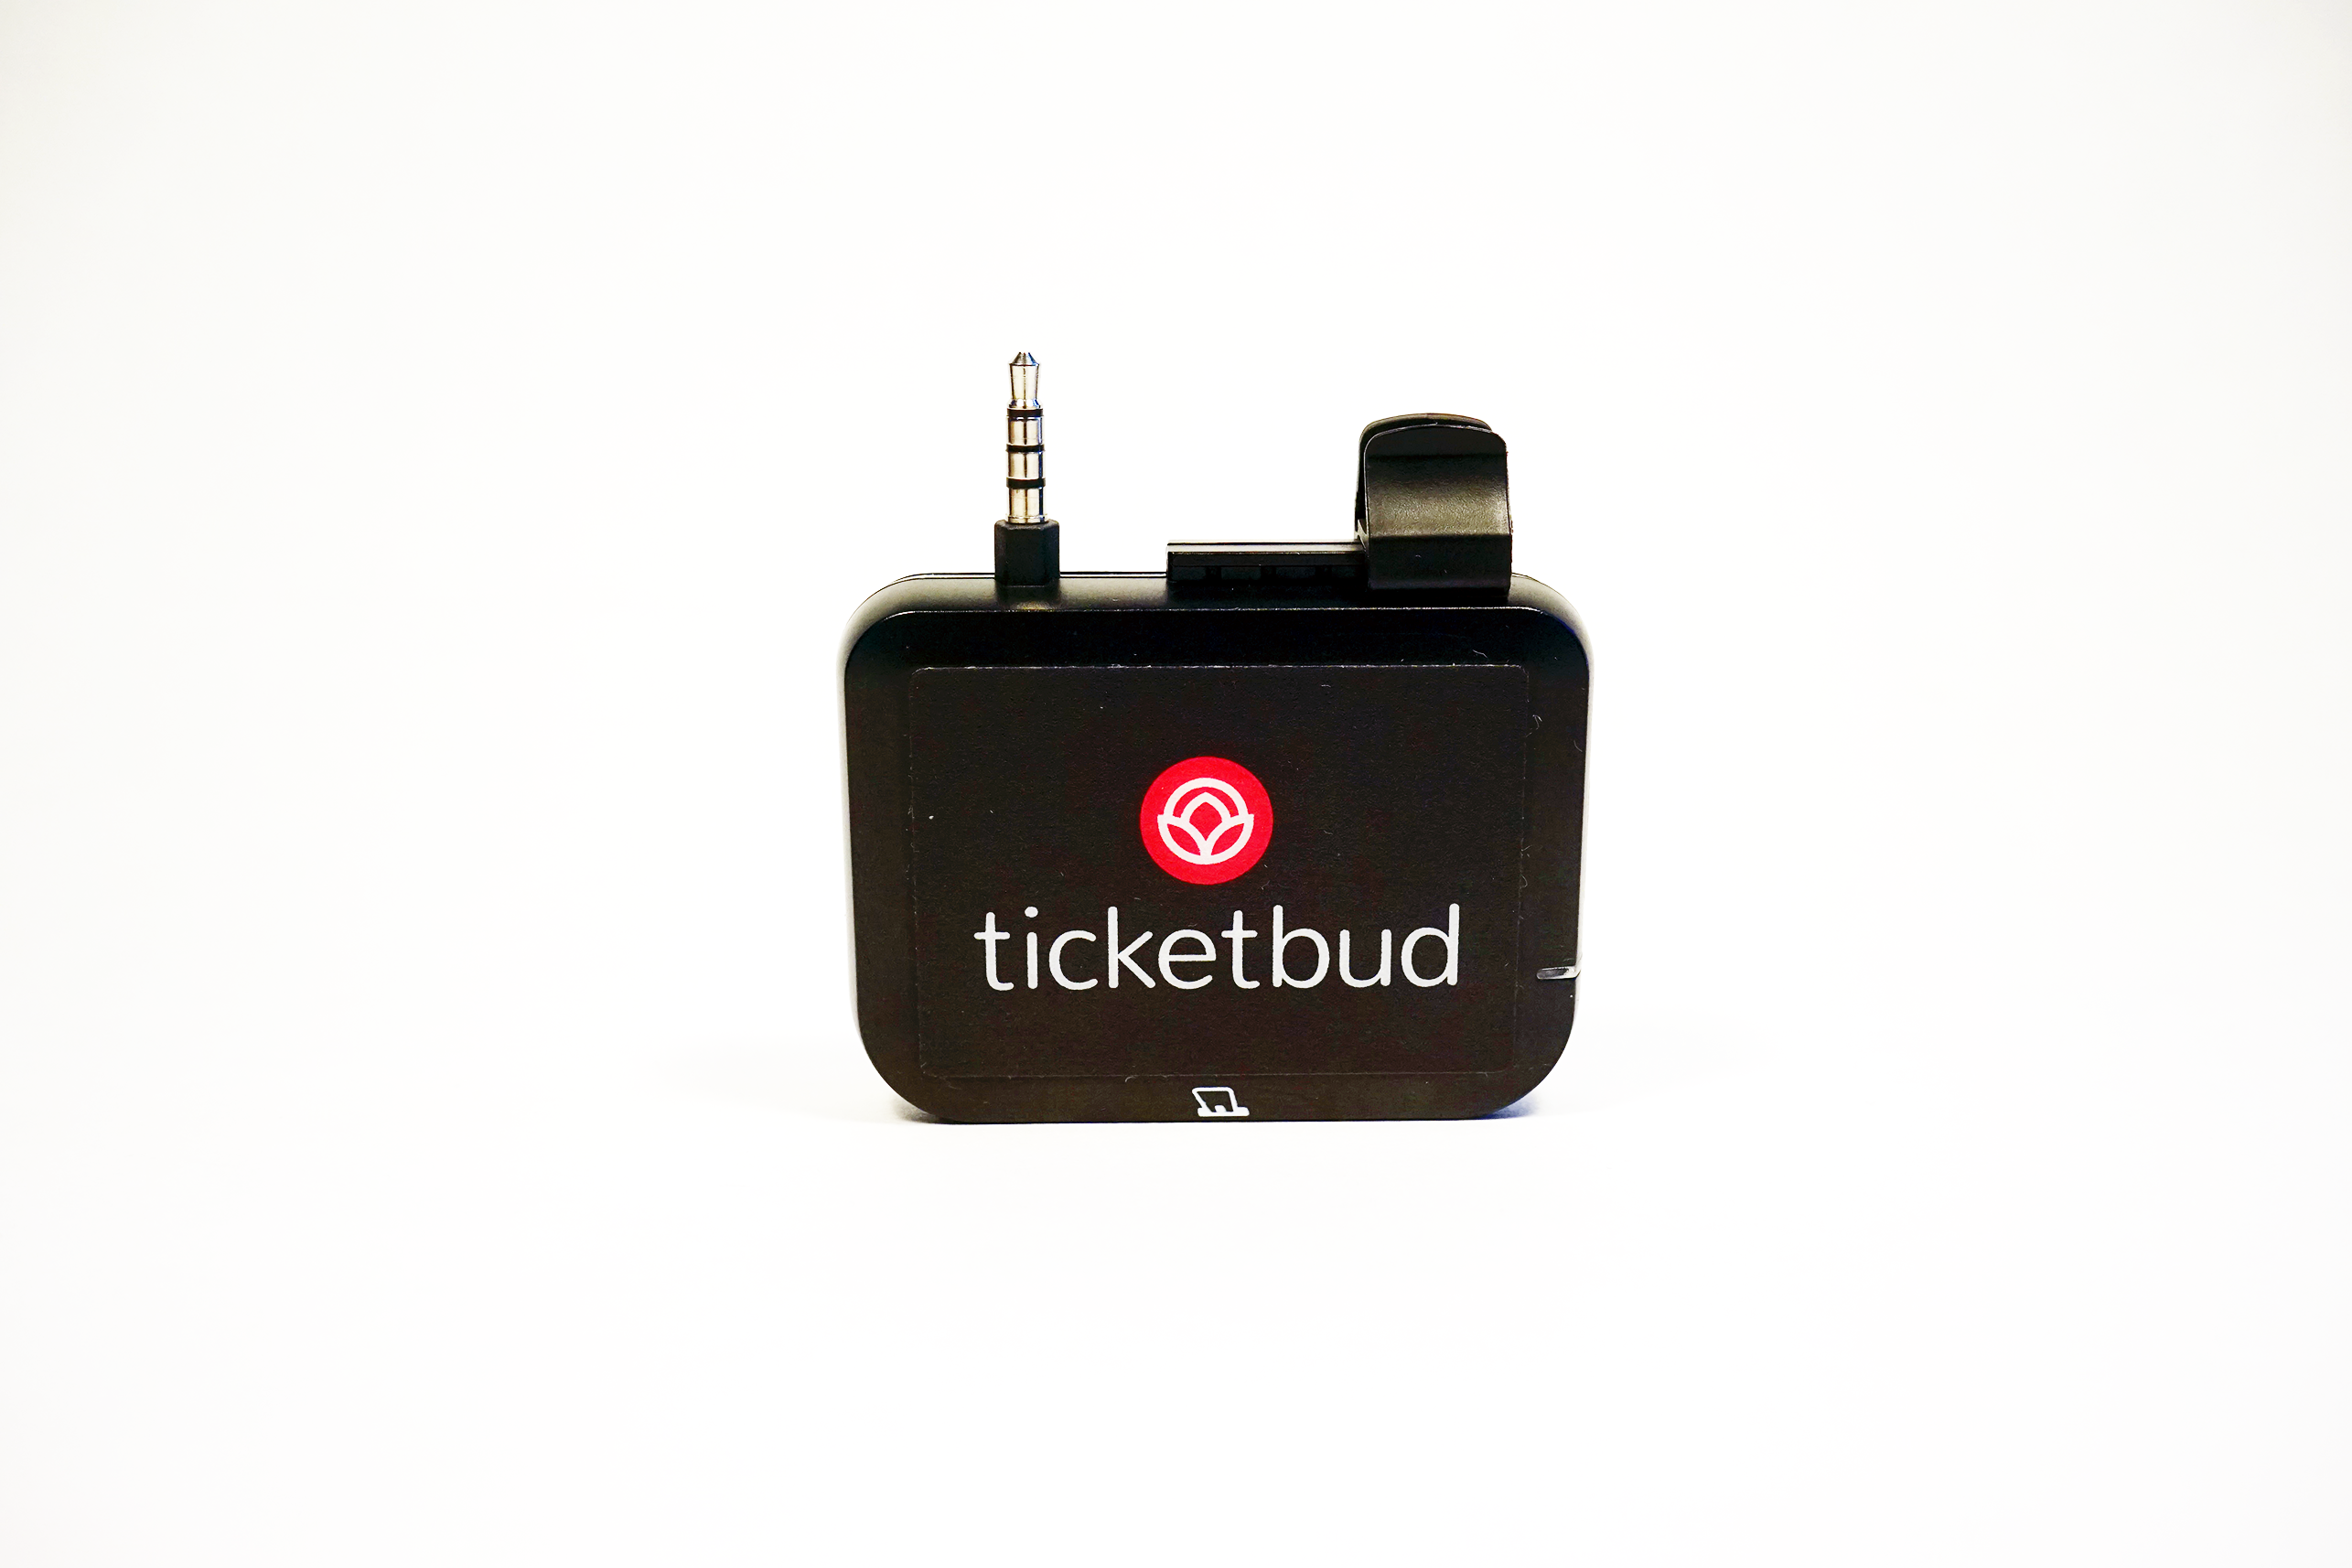 Image showing Ticketbud point of sale device by itself and not attached to an iOS device.